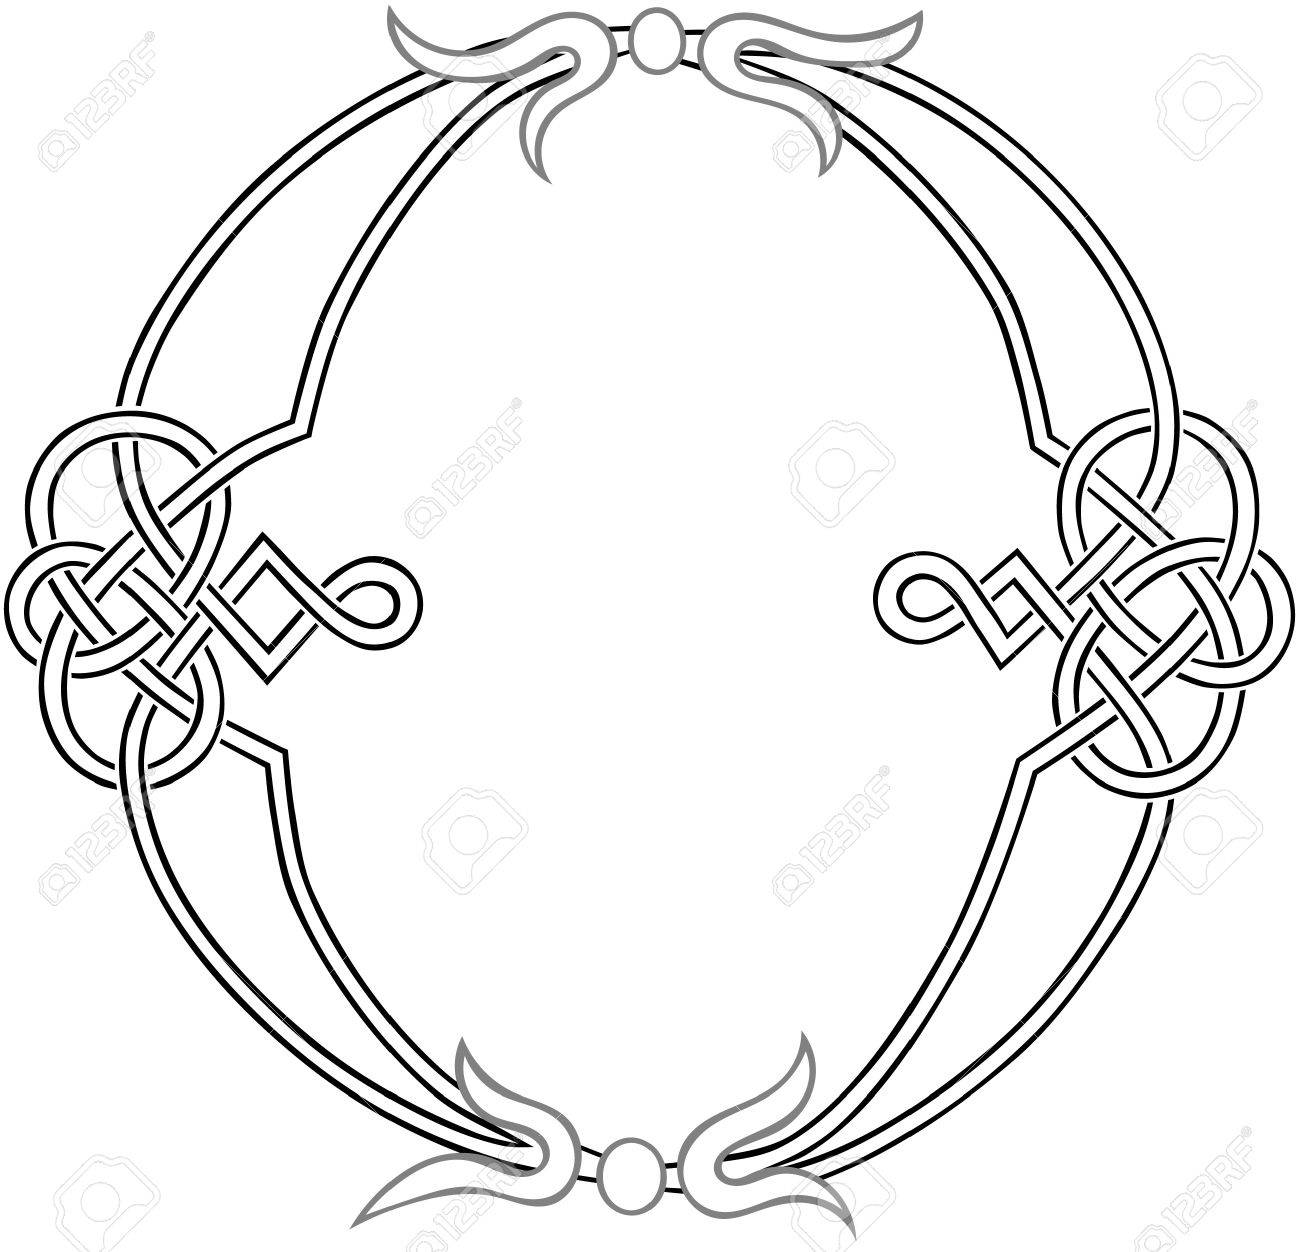 A Celtic Knot-work Capital Letter O Stylized Outline Royalty Free ...